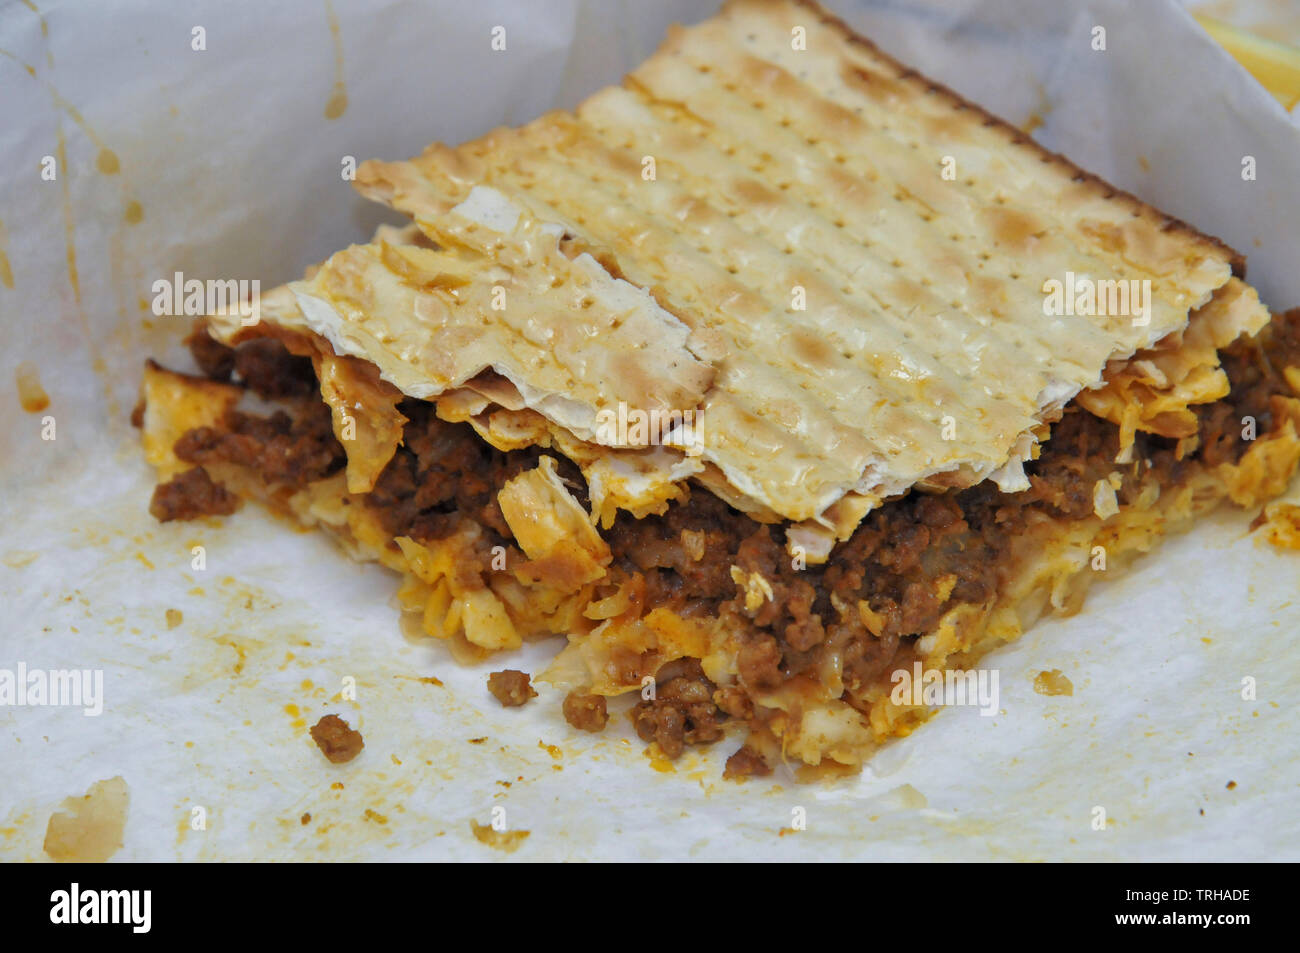 Kosher Matzo Sandwich fit for eating during the week of Pesach / Passover - Stock Image